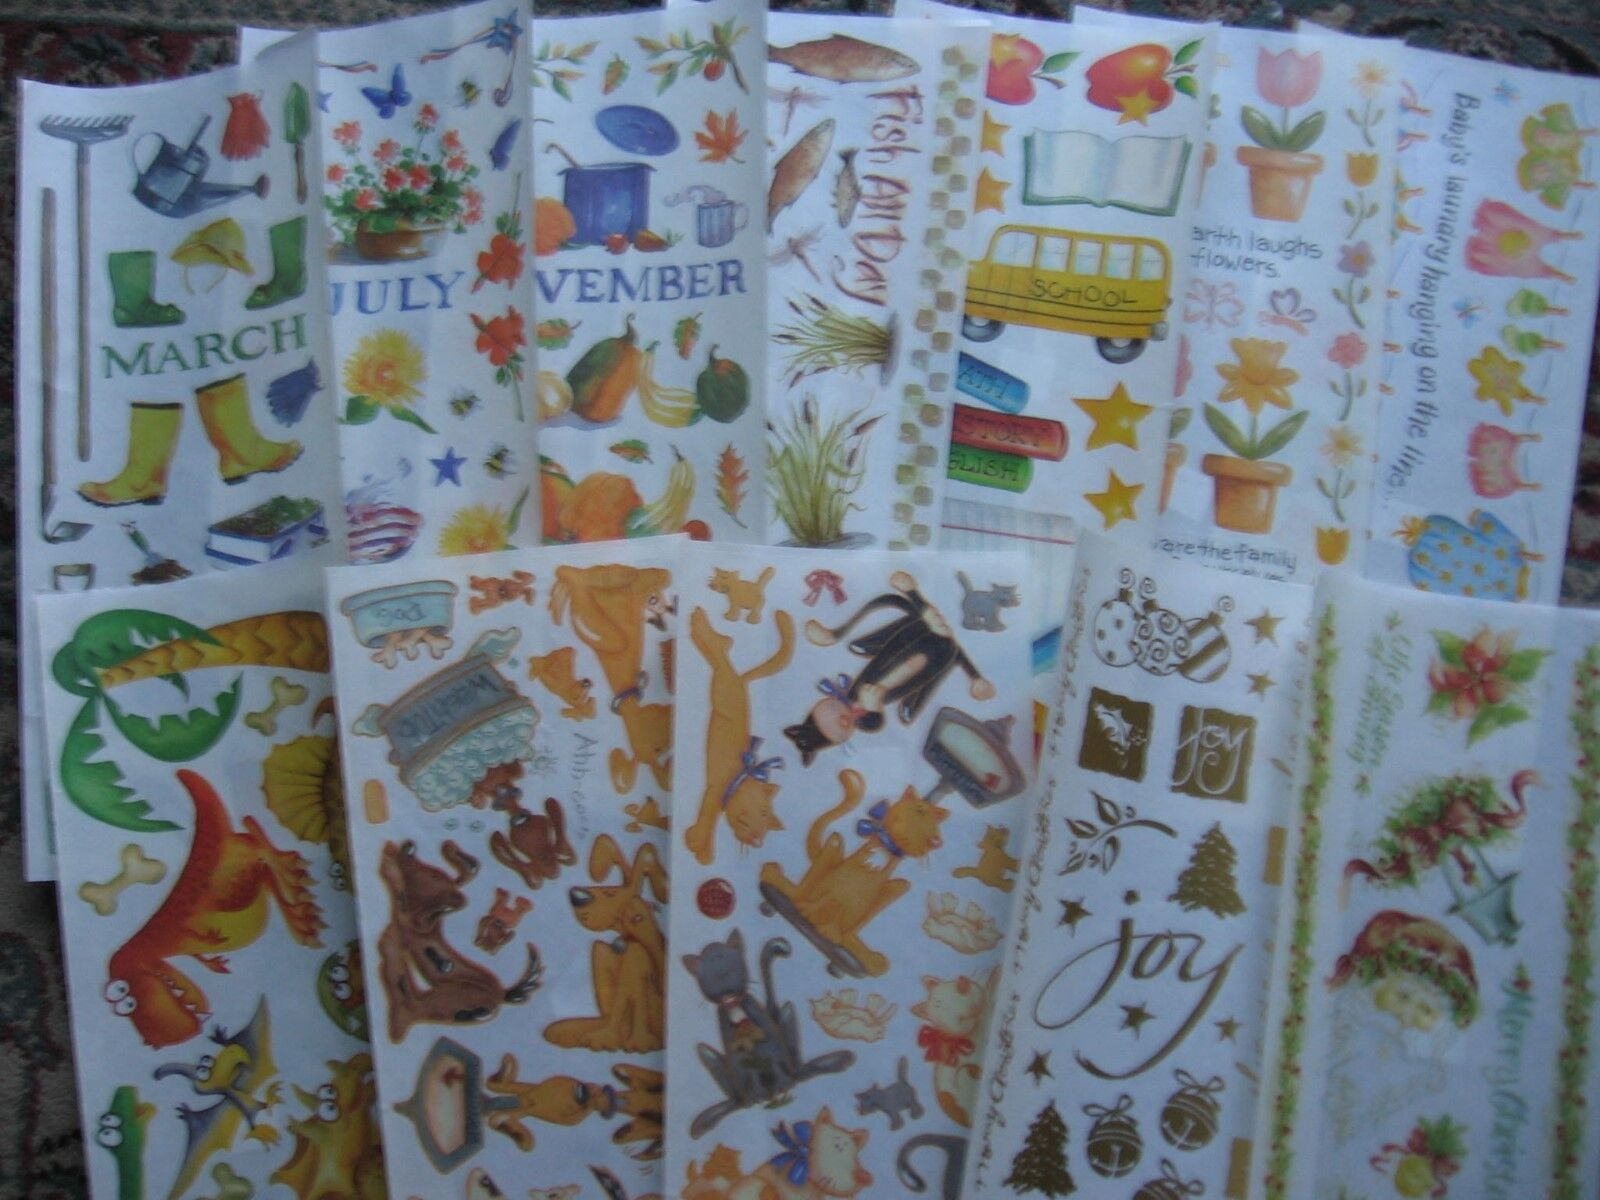 Provo Craft Stickers Months Dogs Cats Fishing Flowers Christ